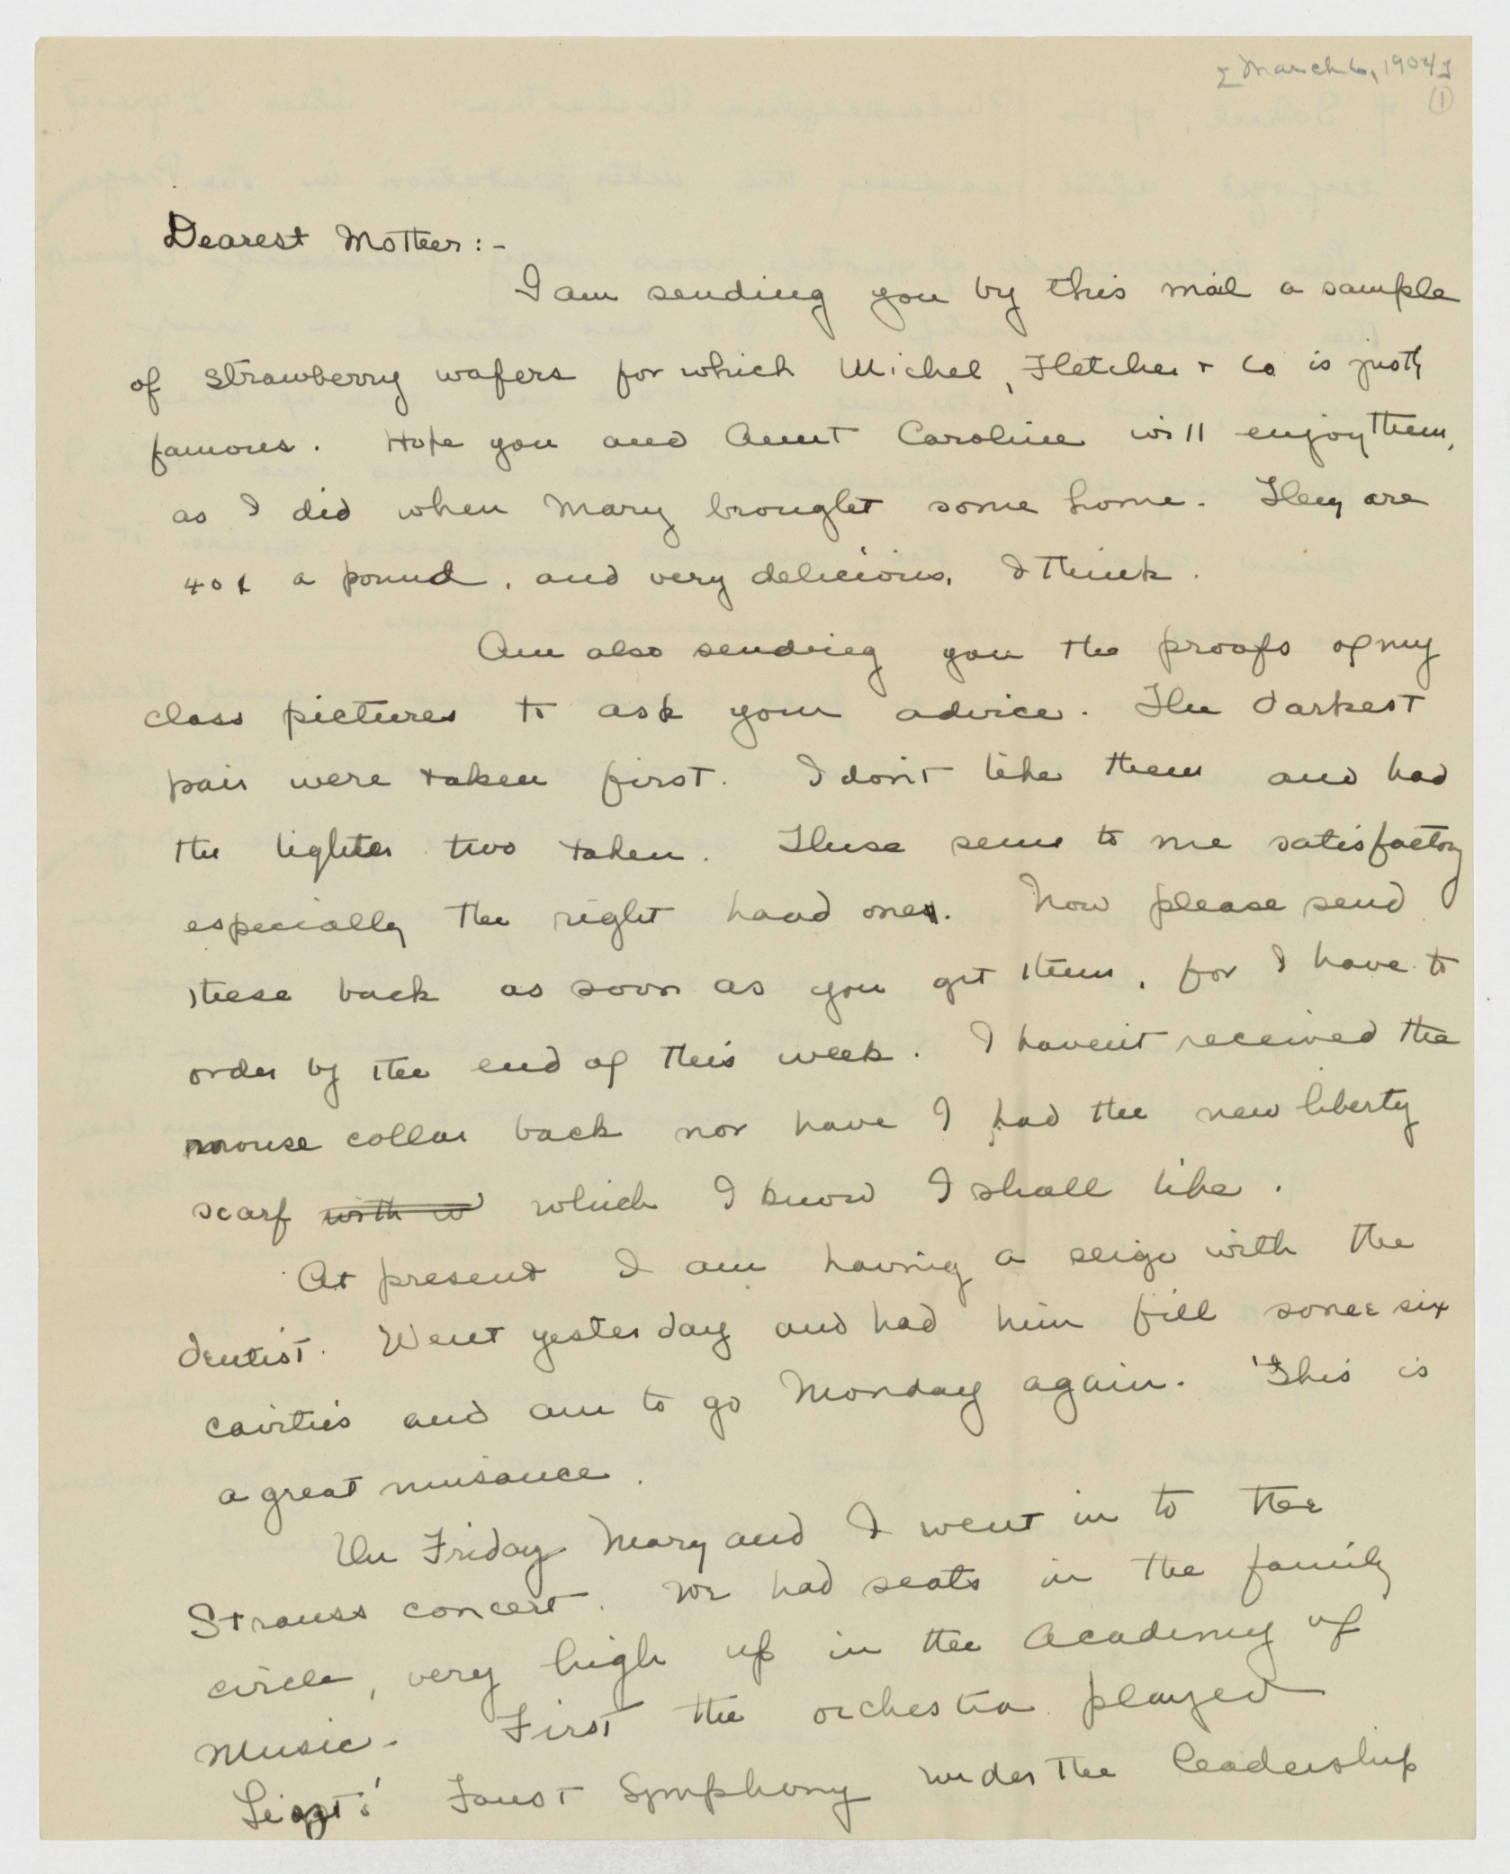 Dorothy Foster papers, Folder 8